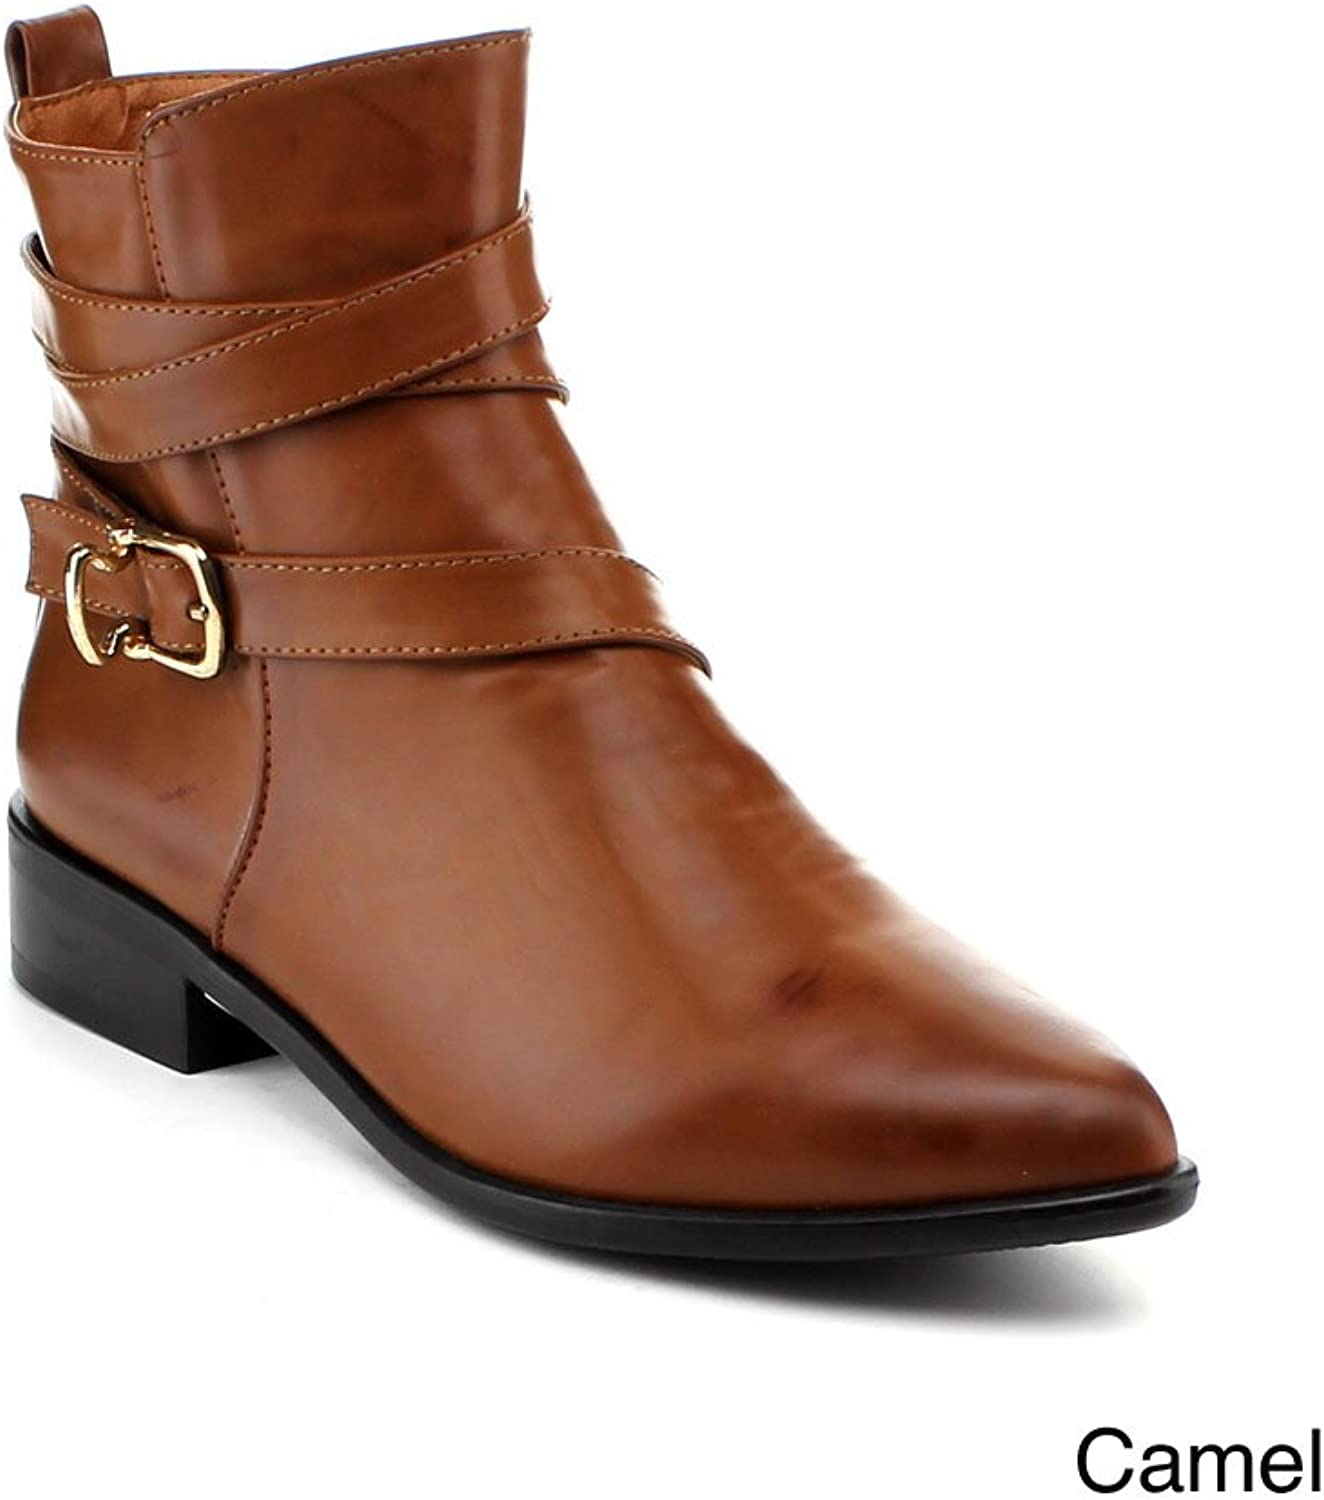 Reneeze Lucia-01 Women Fashion Pointy Toe Flat Ankle Boot With Wrapped Strap